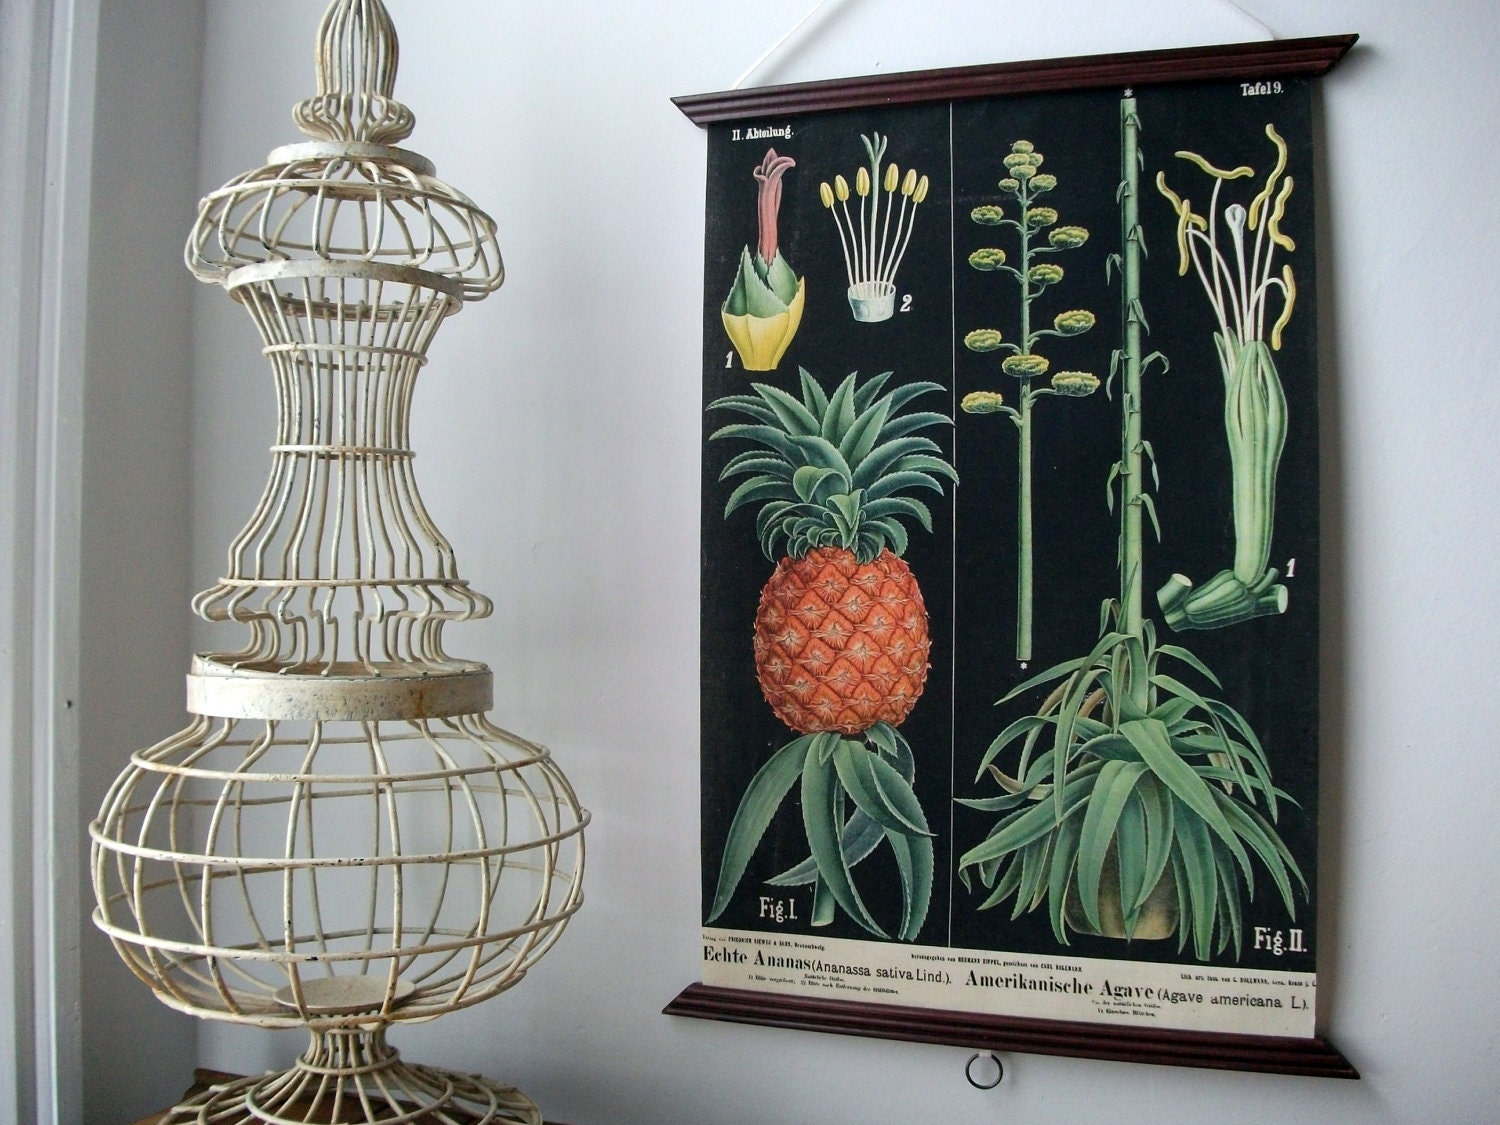 Vintage Pull Down Educational Chart Style Wall Hanging Print on Fabric with Stained Wood Trim  - Botanical Black Pineapple